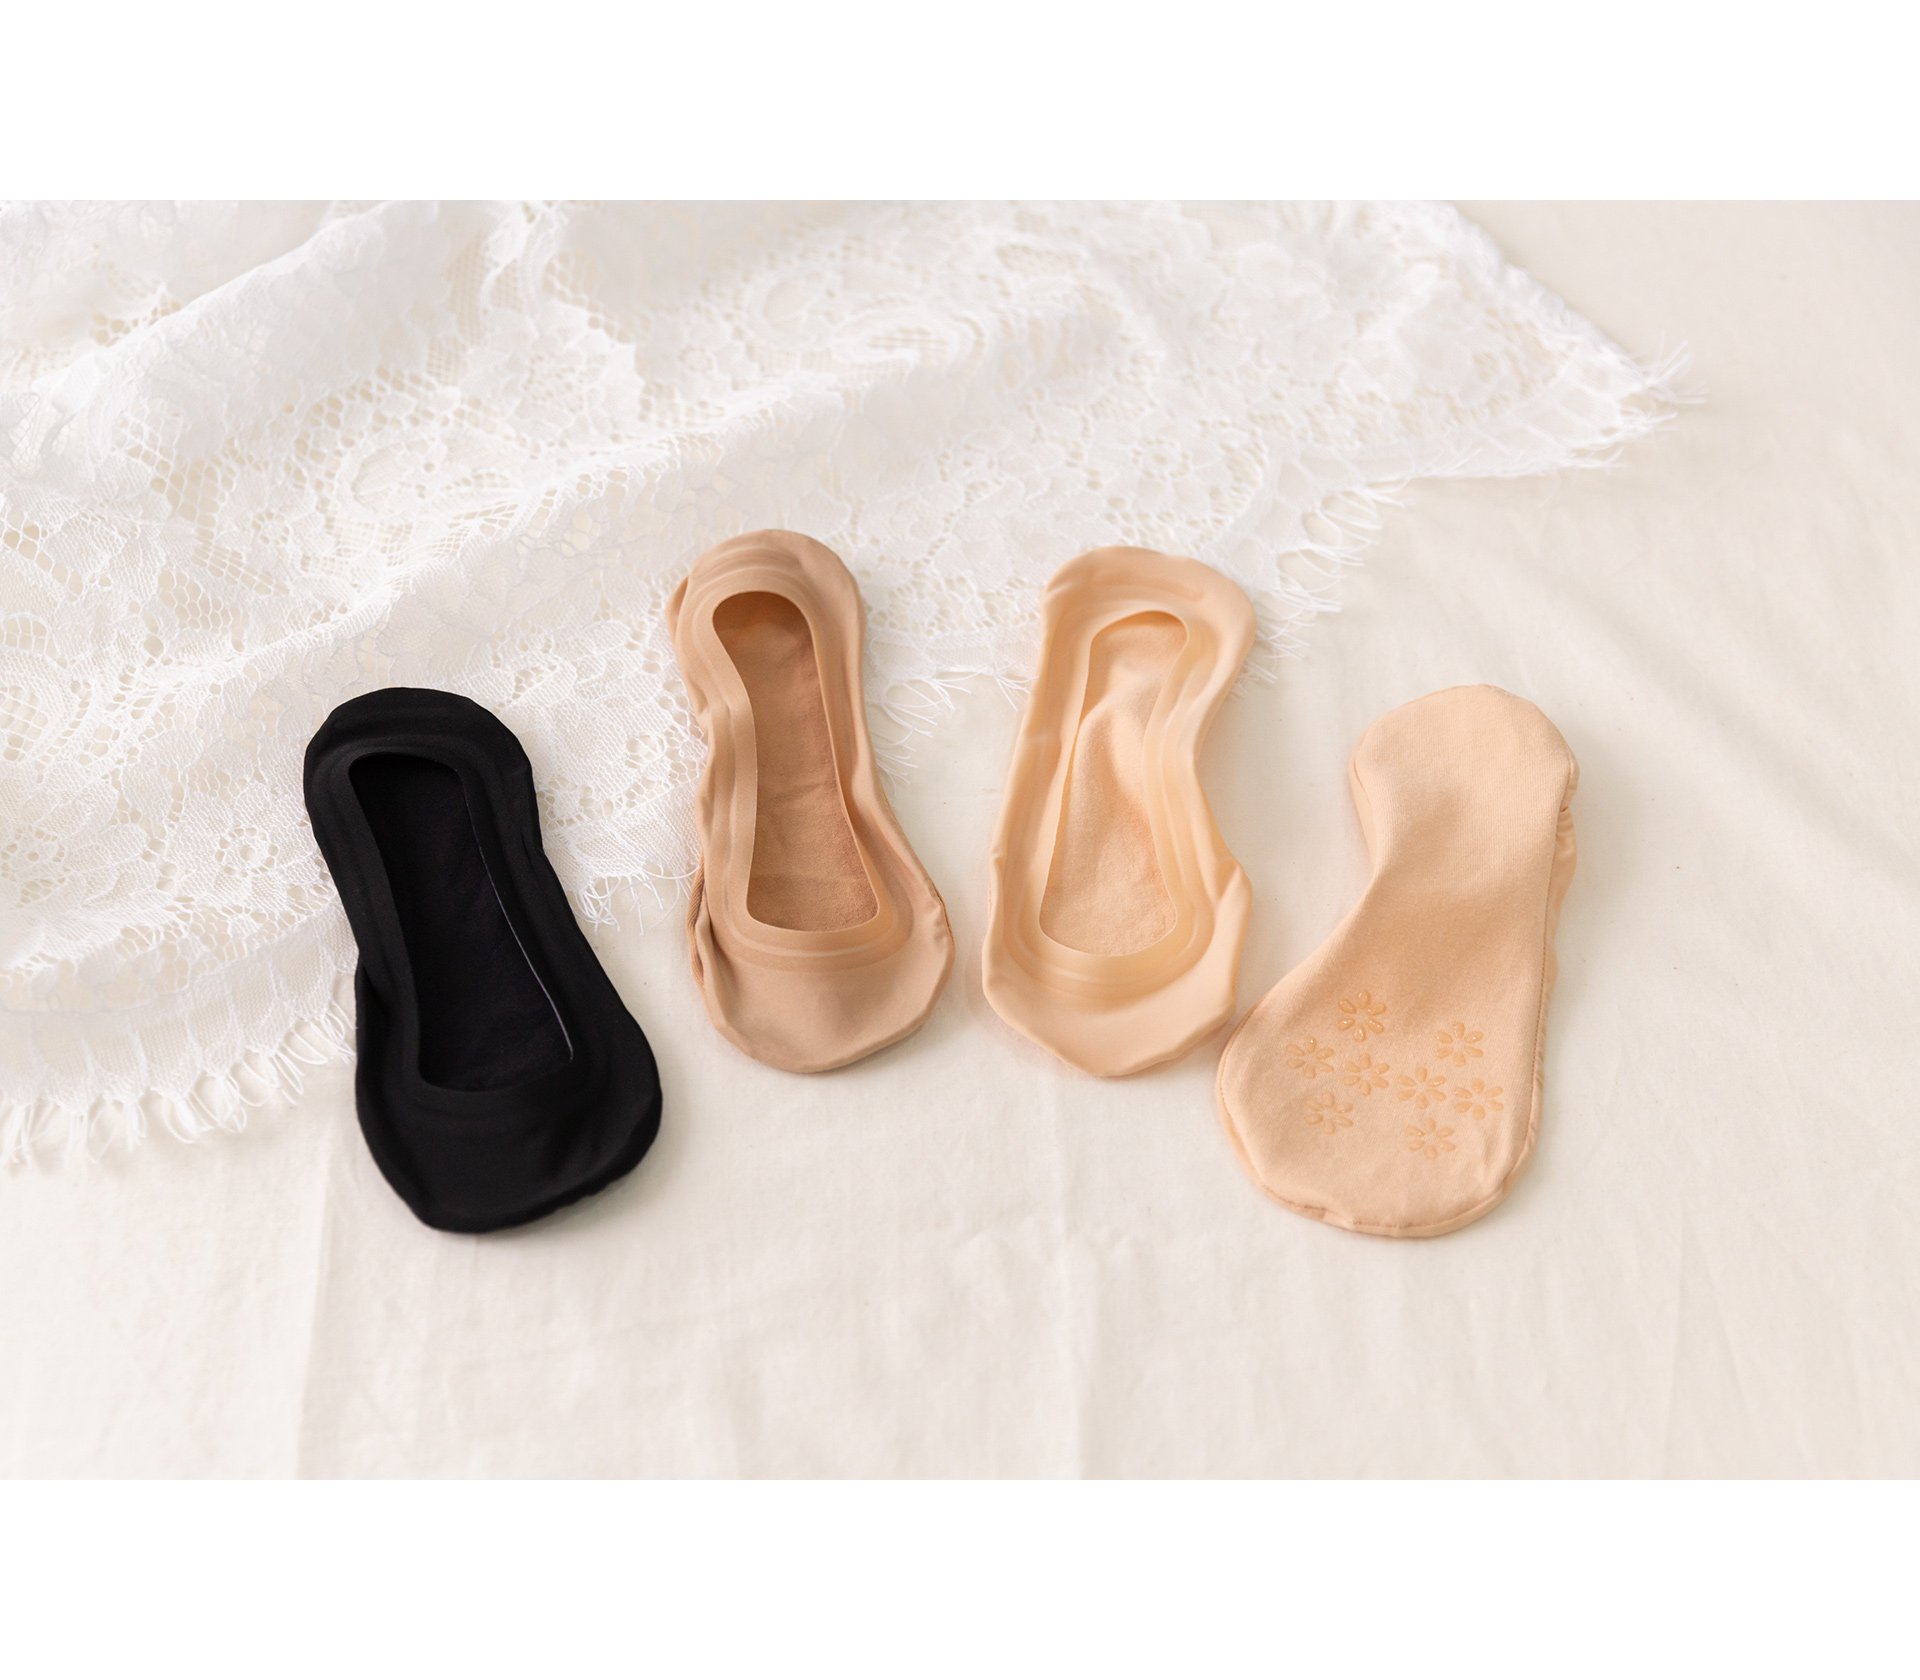 Toto nude toe gumshoes #86173